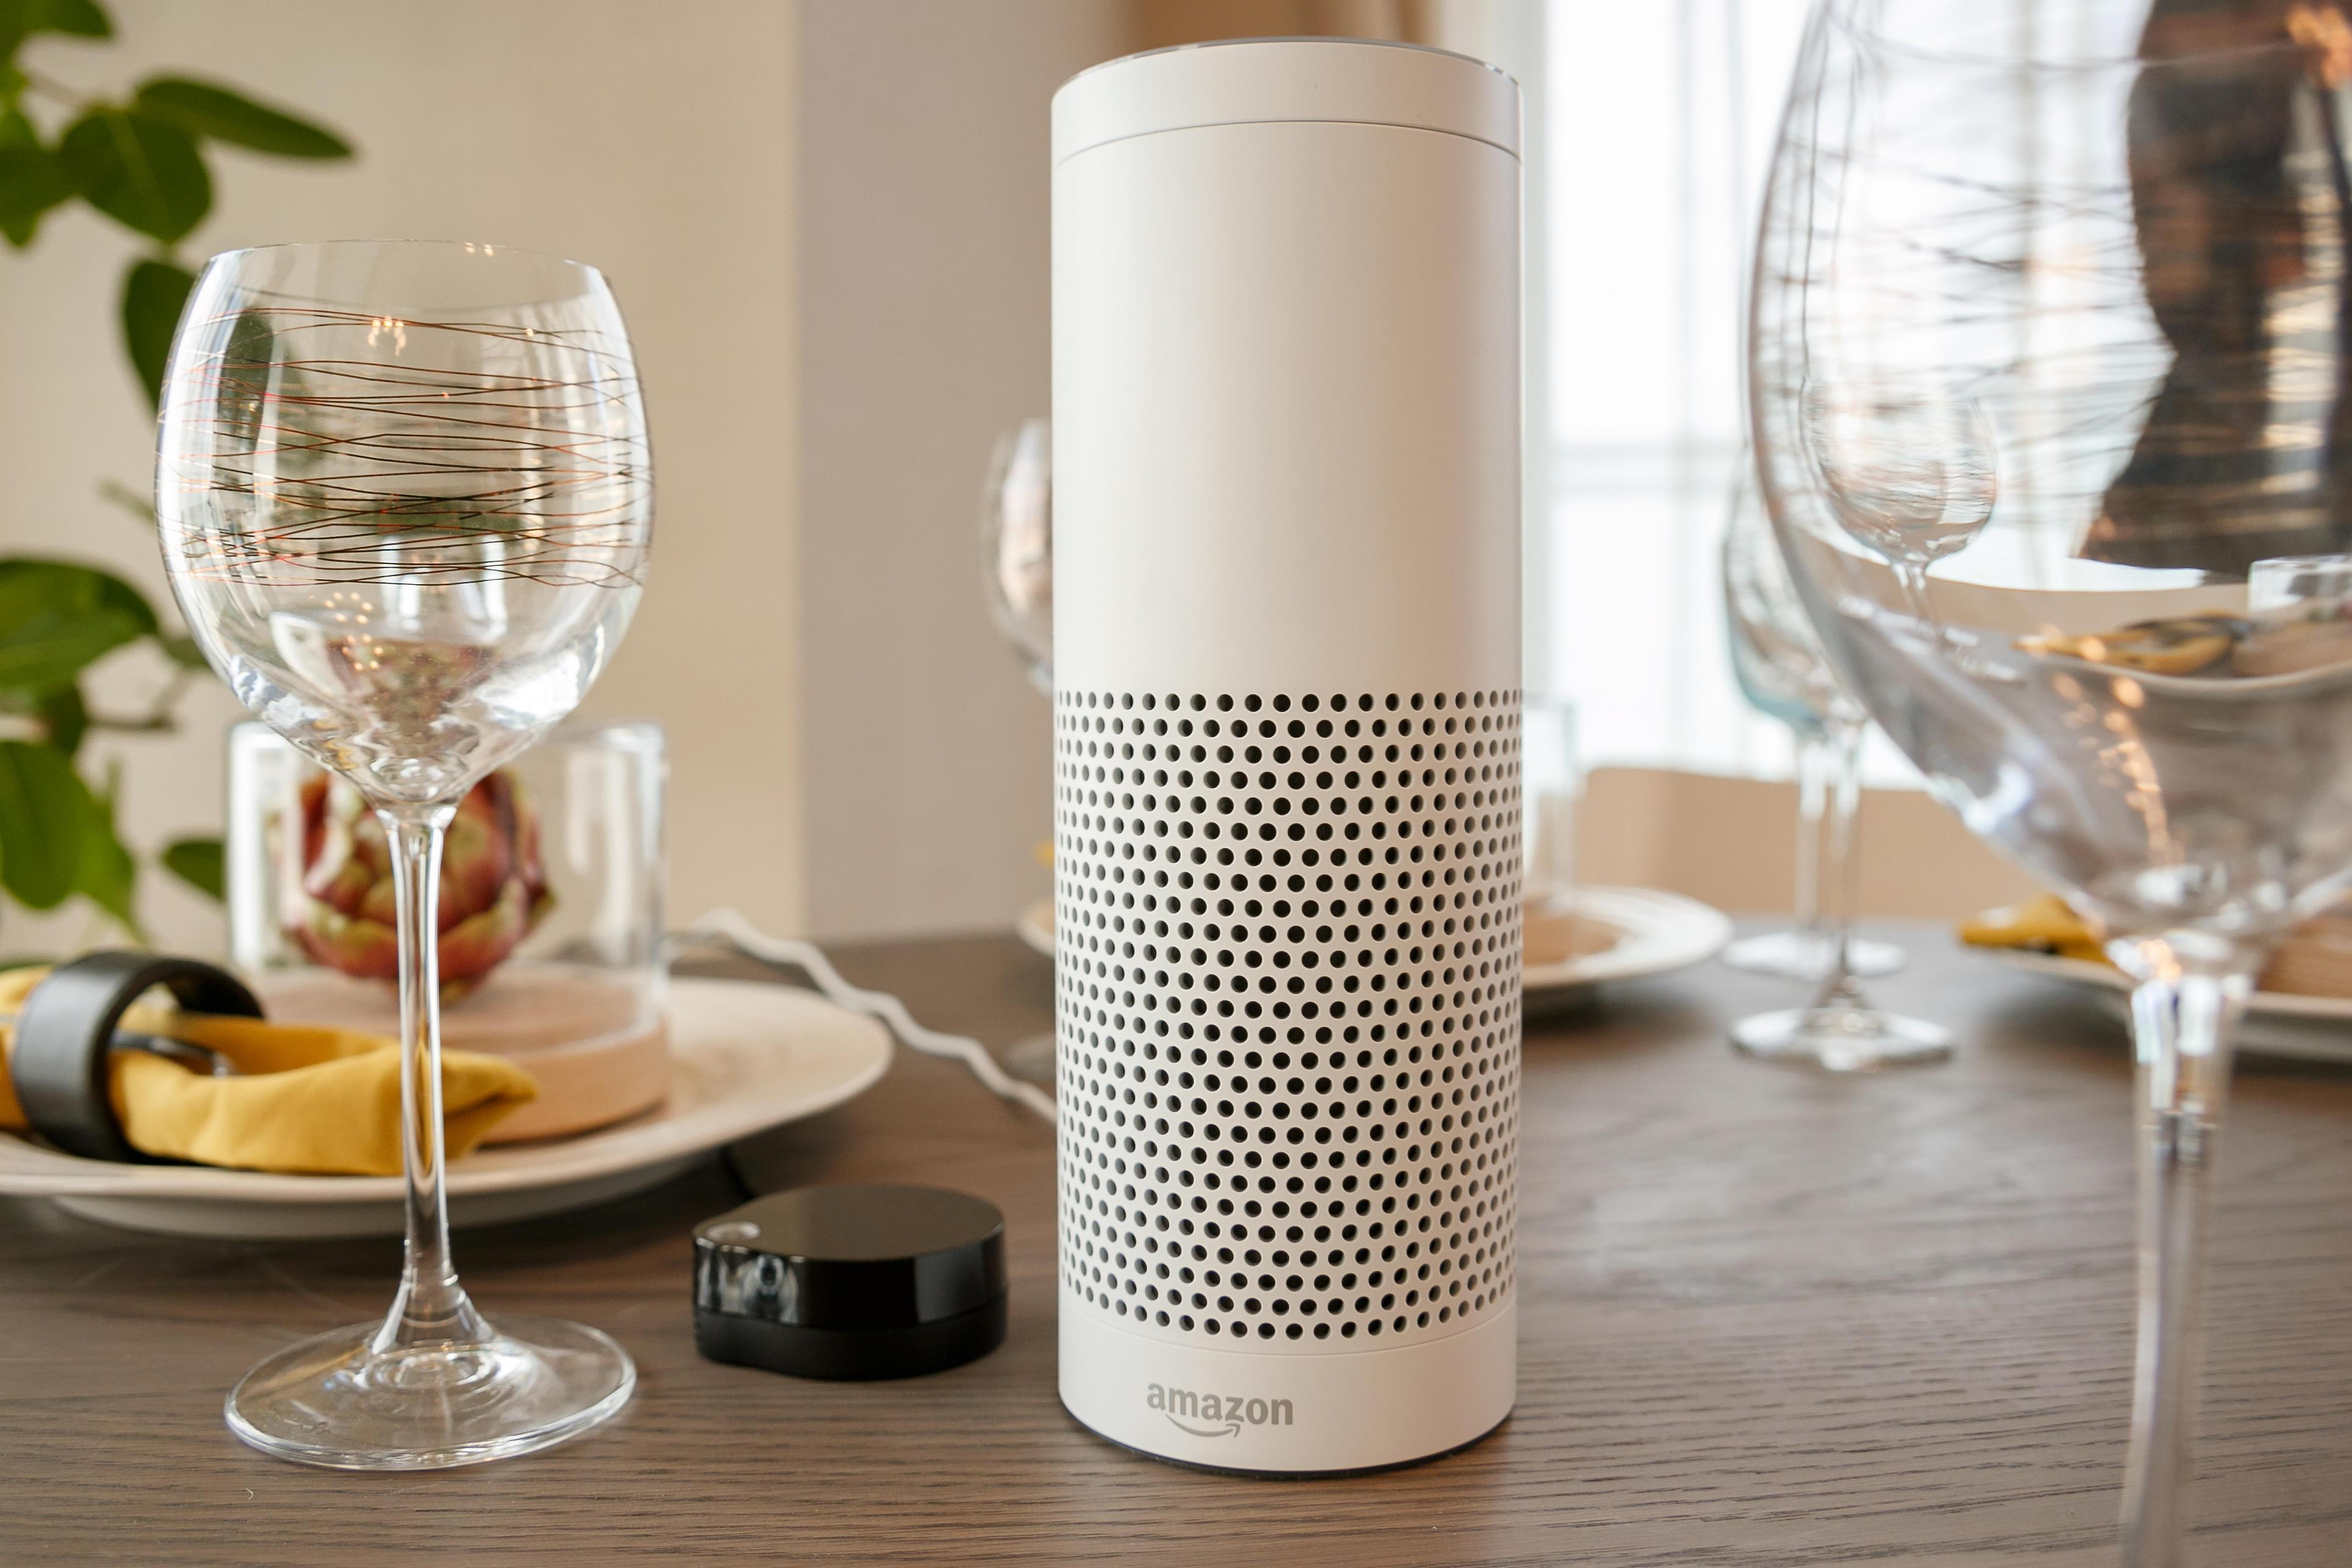 How do I get the best from Alexa?